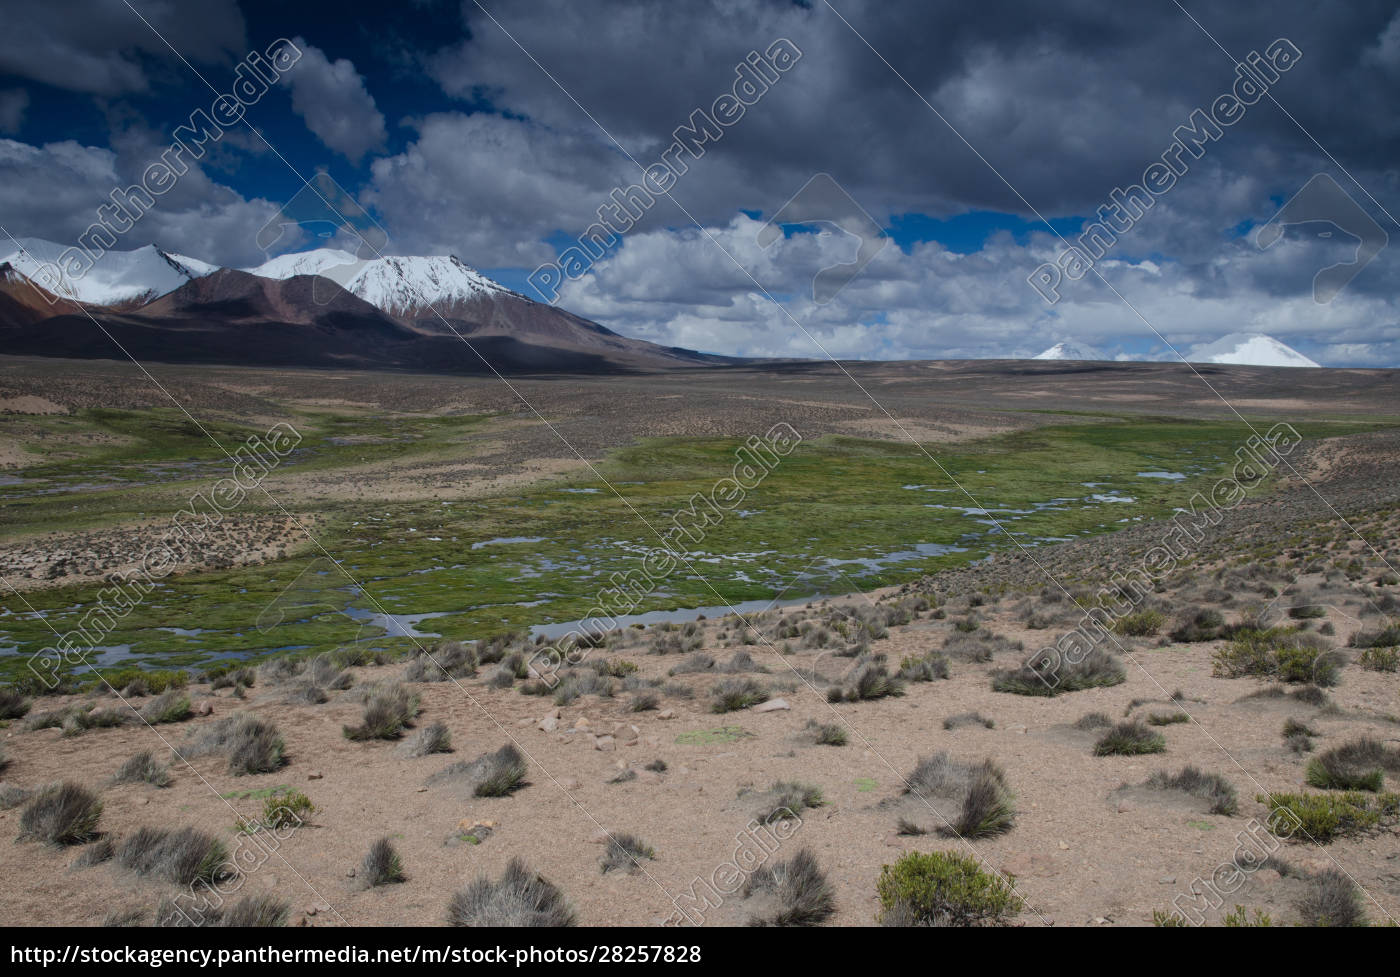 high, plateau, and, mountains, in, lauca - 28257828